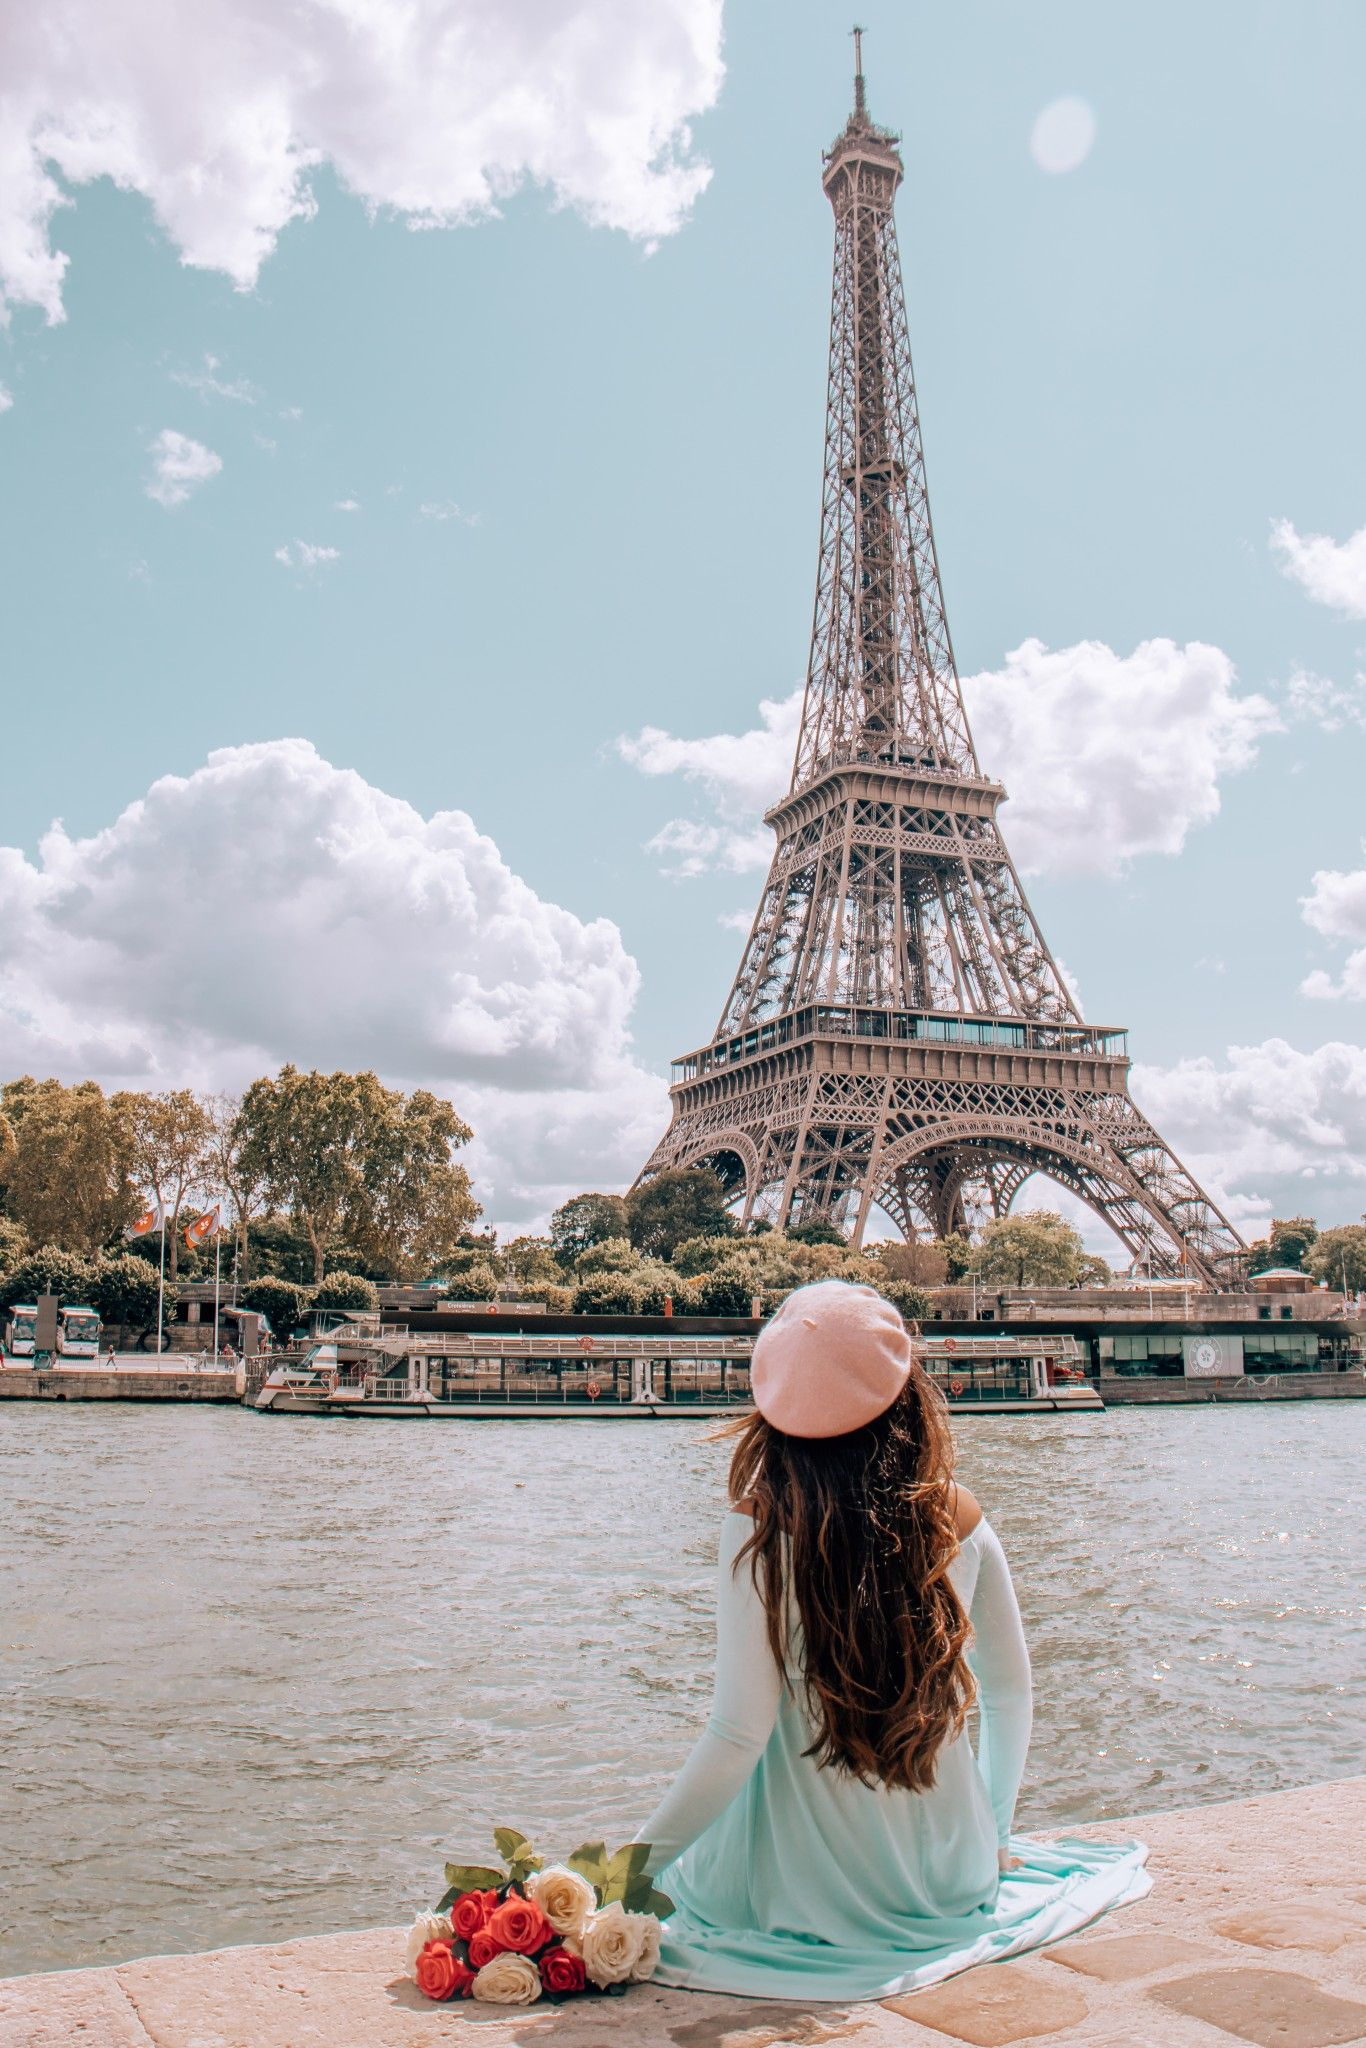 12 Best Photo Spots in Paris For Epic Instagram Shots - Quais de Seine #paris #instagram